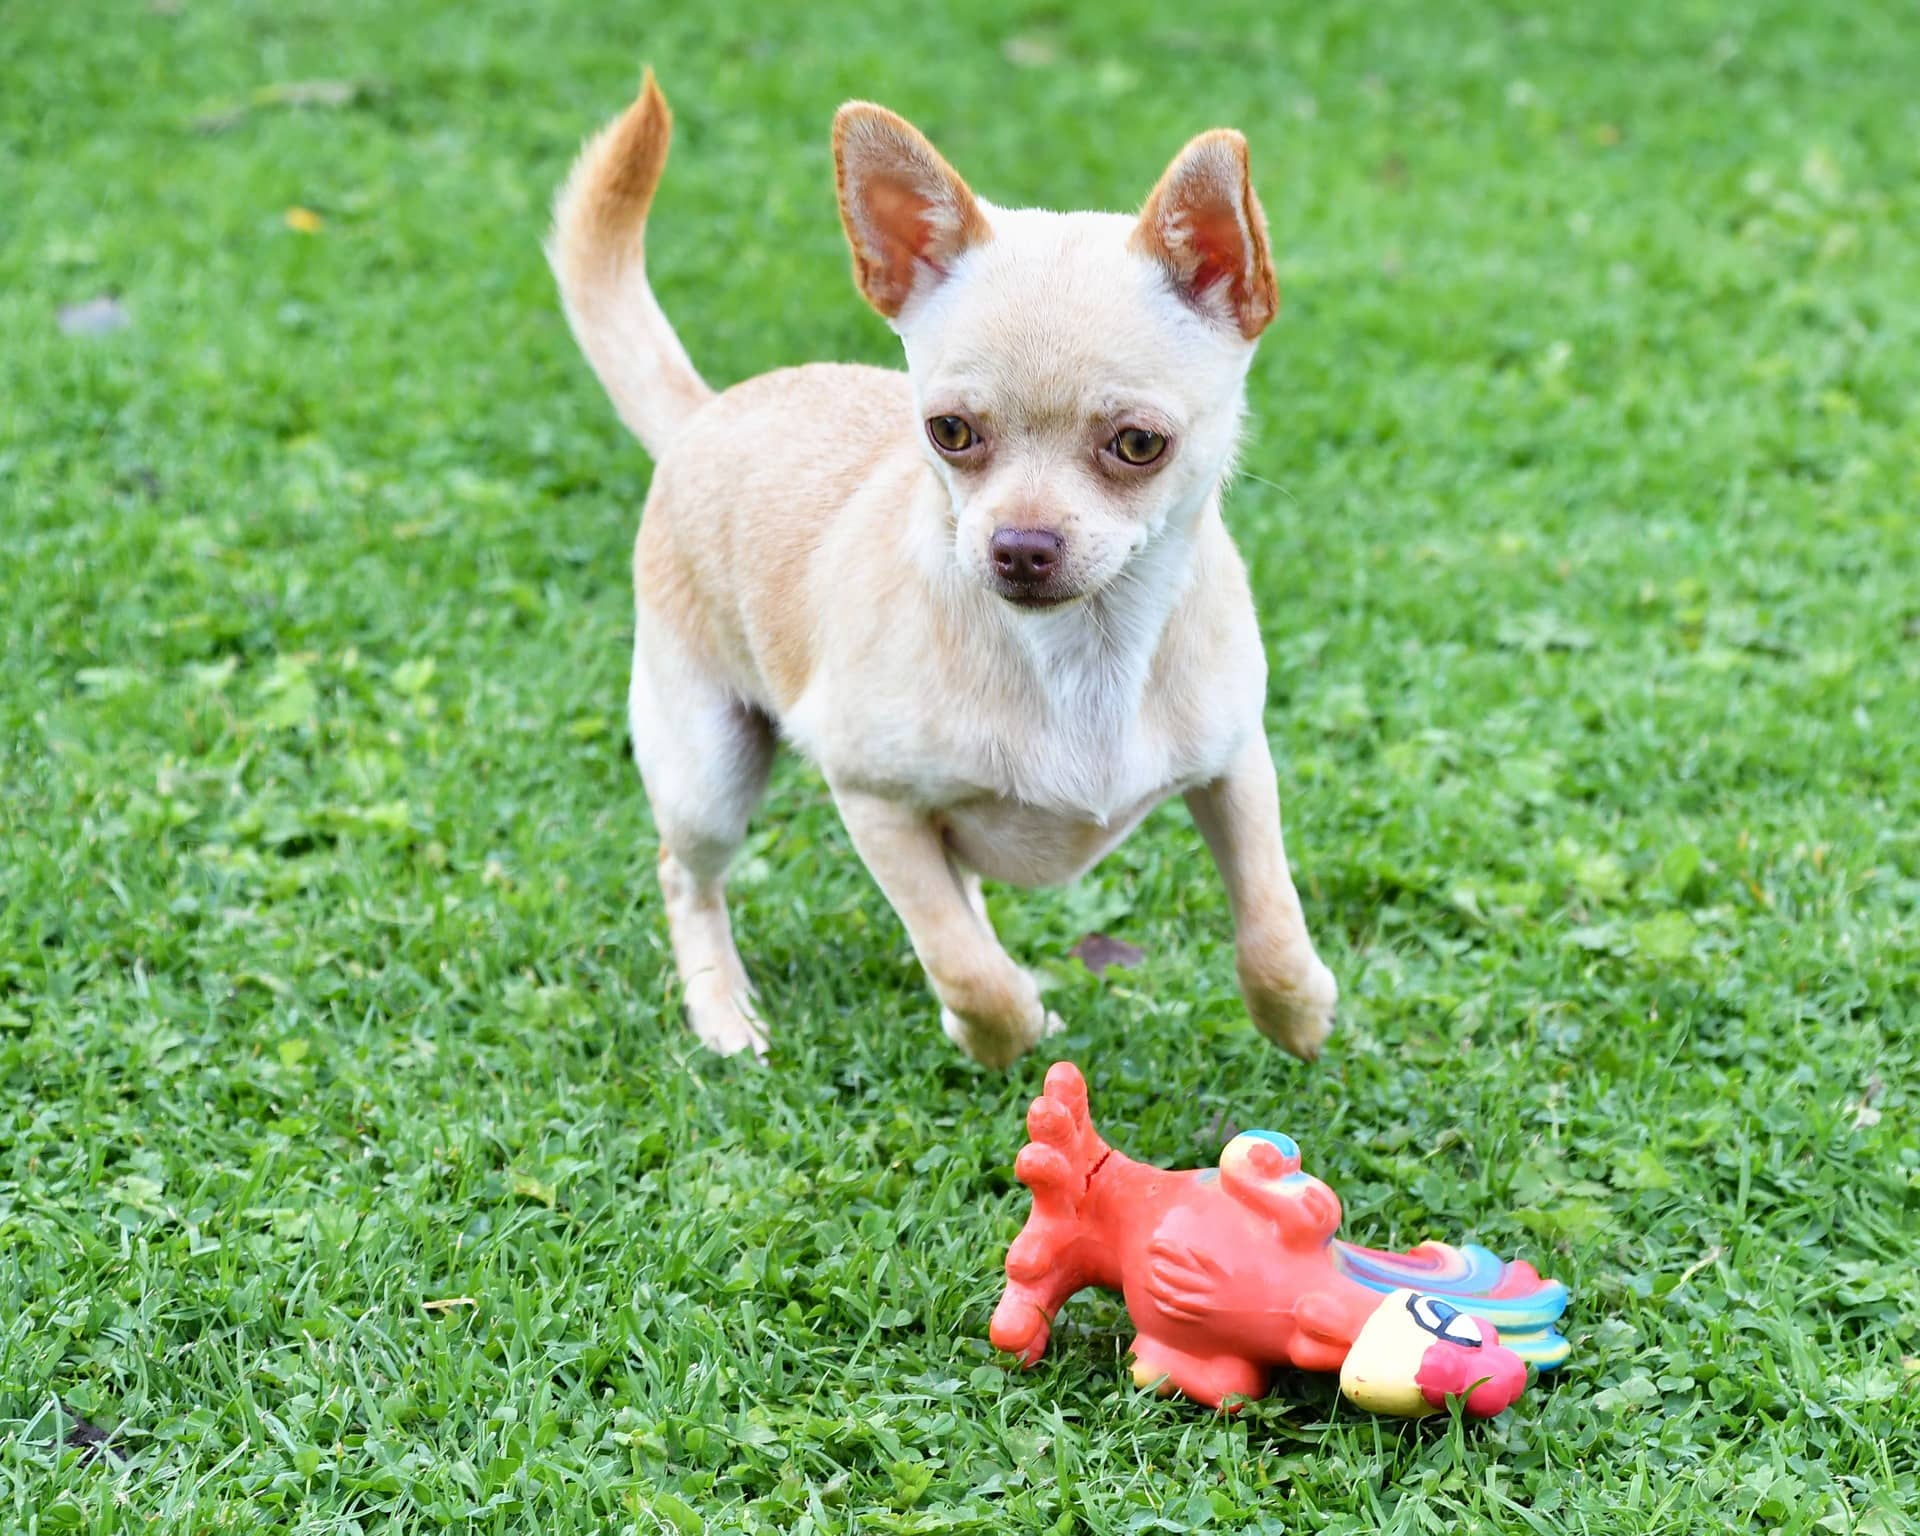 How to Train Your Chihuahua Pup (Helpful Tips and Tricks)